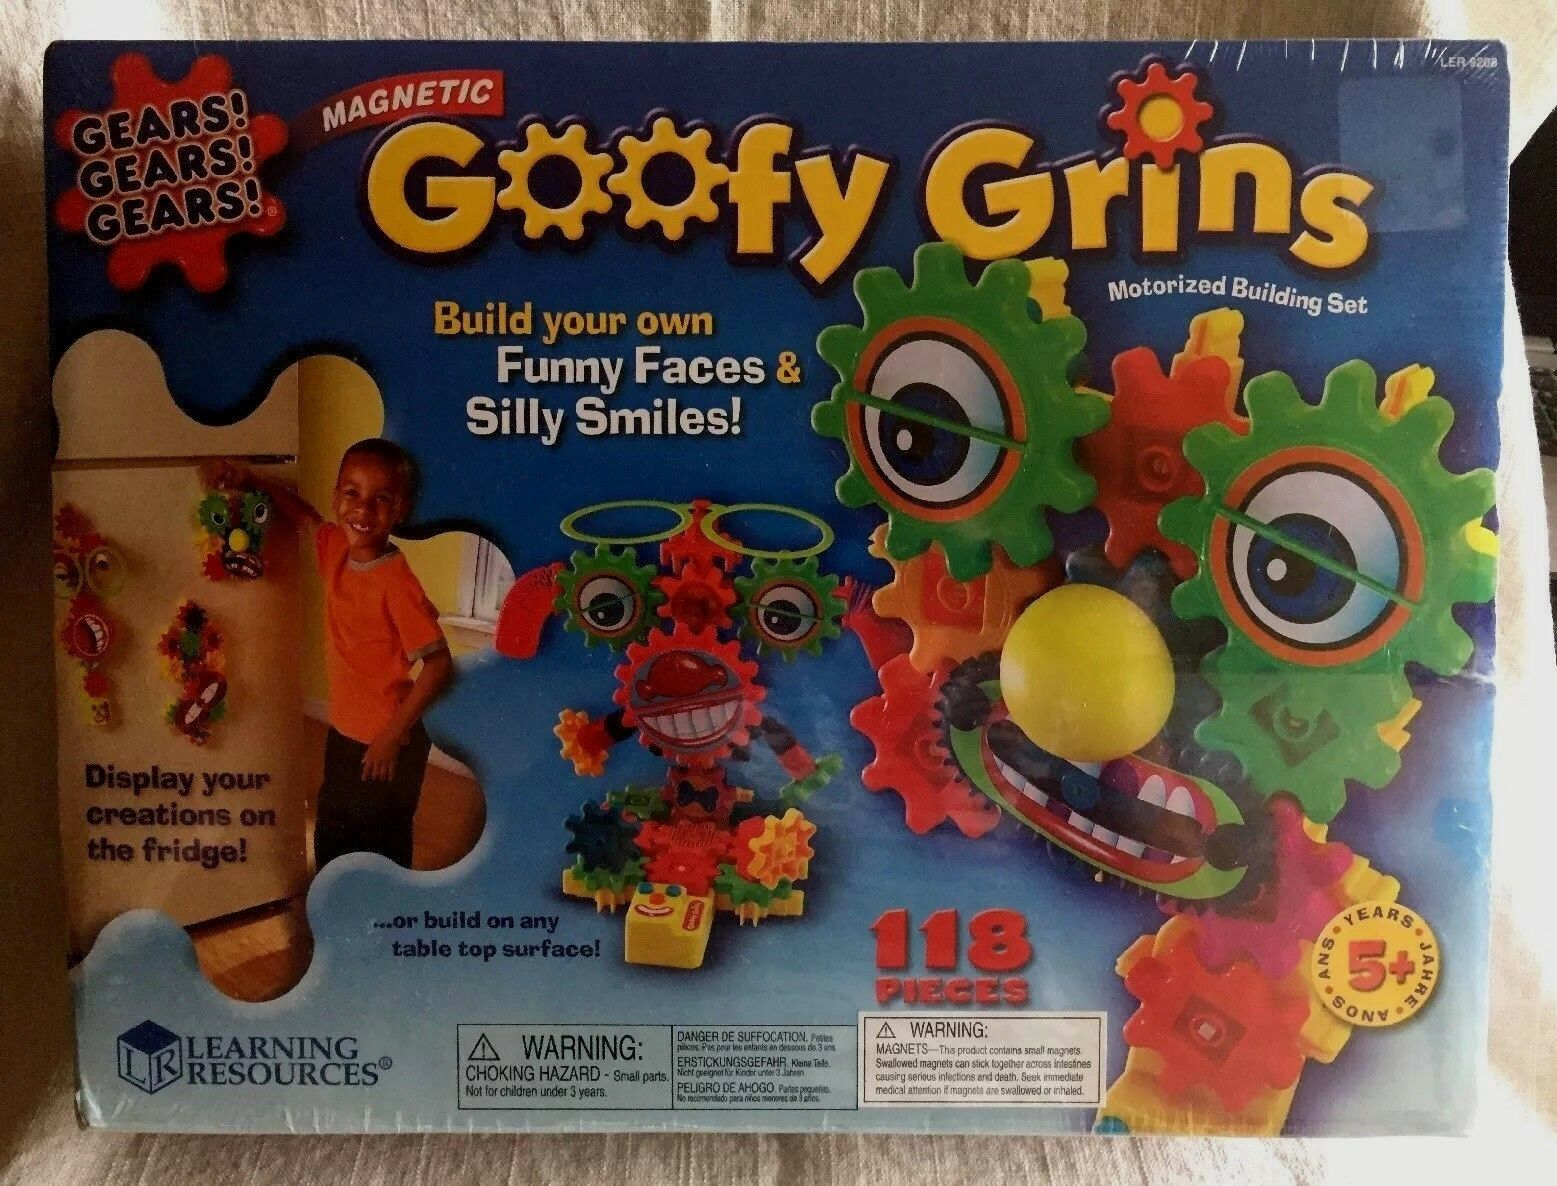 BRAND NEW SEALED Goofy Grins Magnetic Gears 118 Pieces Motorized Learning Faces